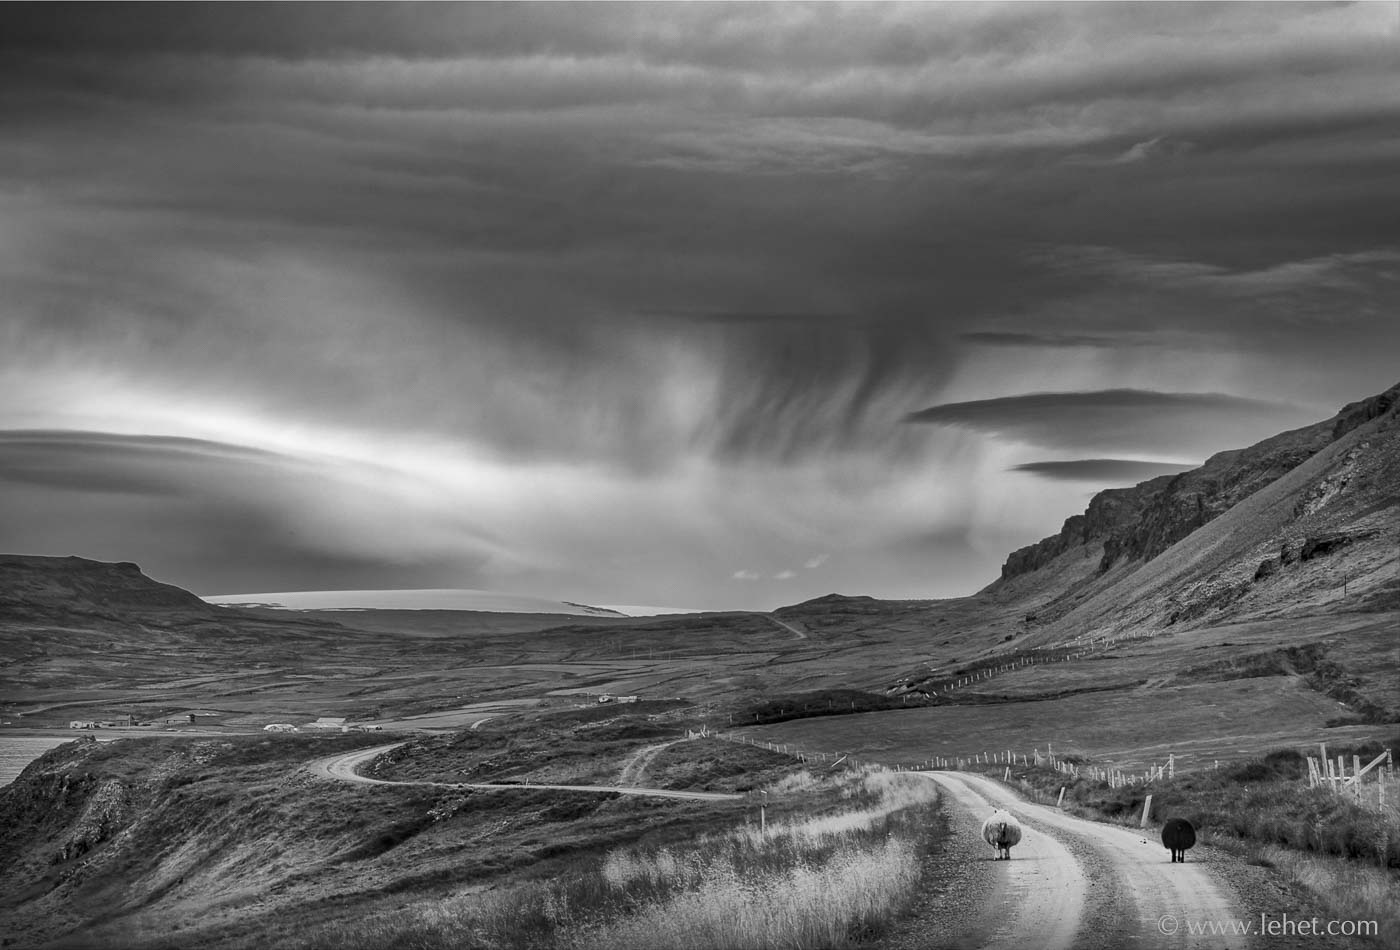 Black Sheep, White Sheep, Curved Road, Iceland